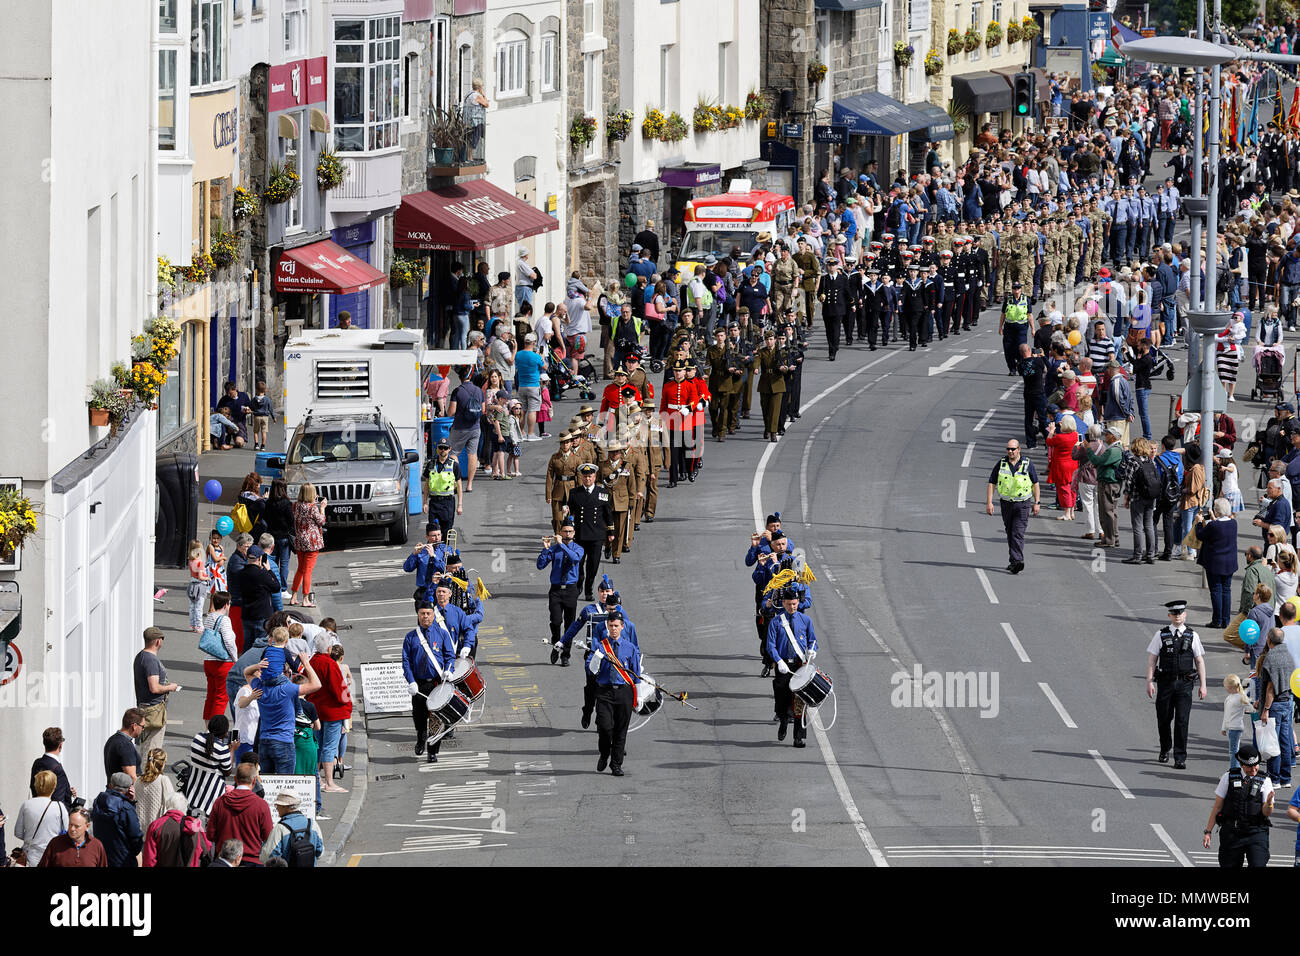 The annual Liberation Day Church Parade in St Peter Port, Guernsey - Stock Image